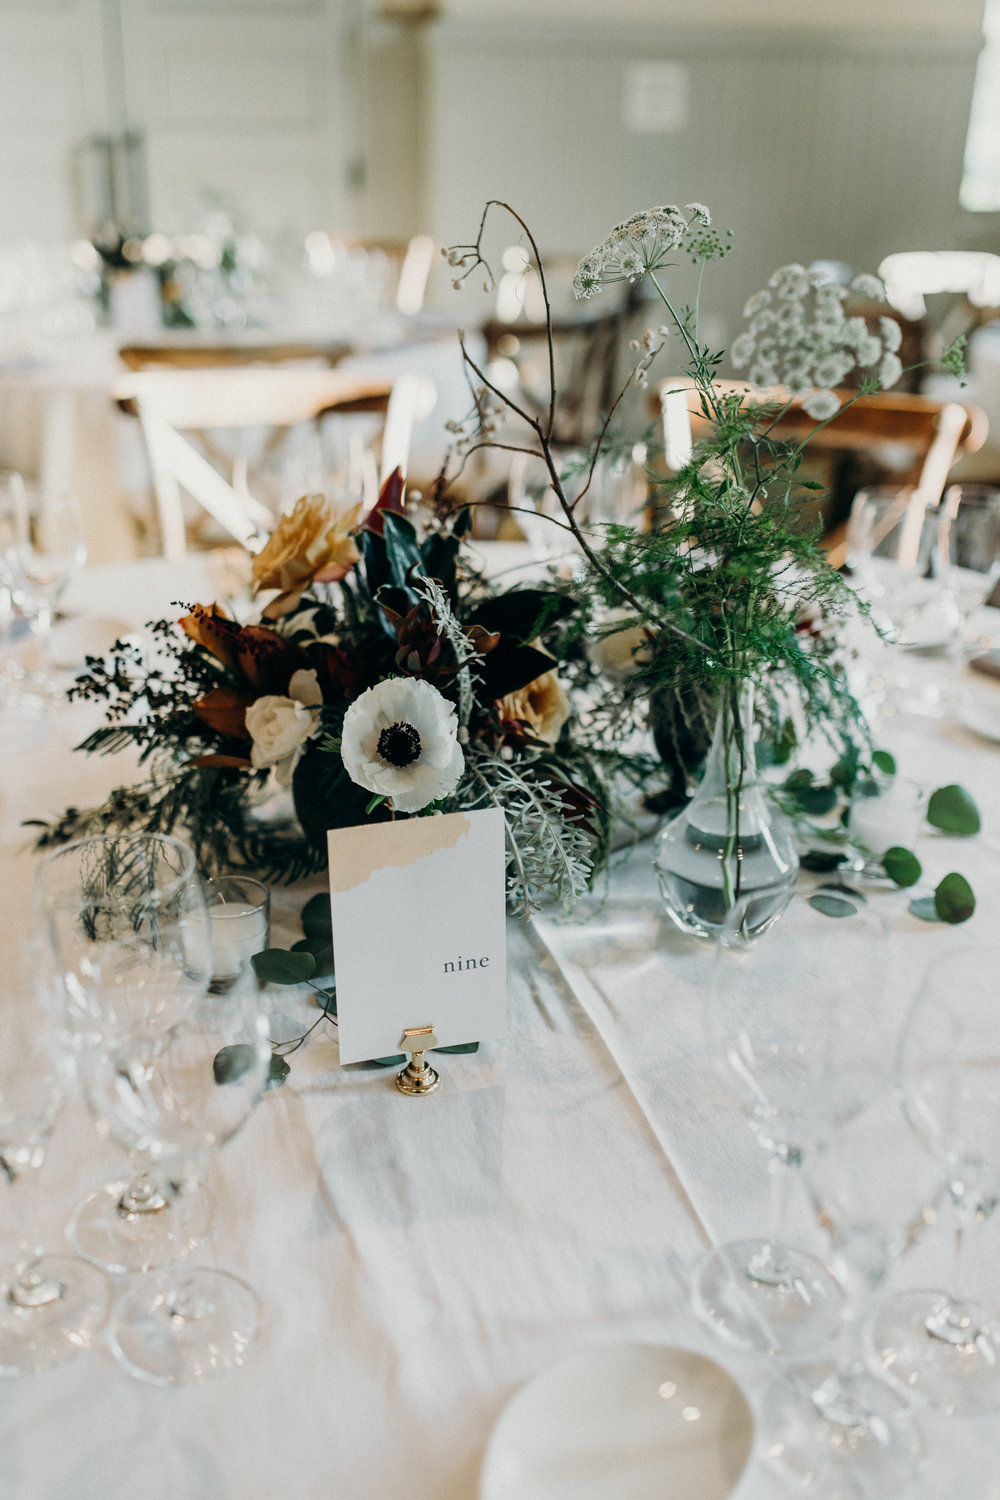 Organic centerpiece designs for round tables by Venn Floral at Cavallo Point photographed by Ryan Chard Smith.